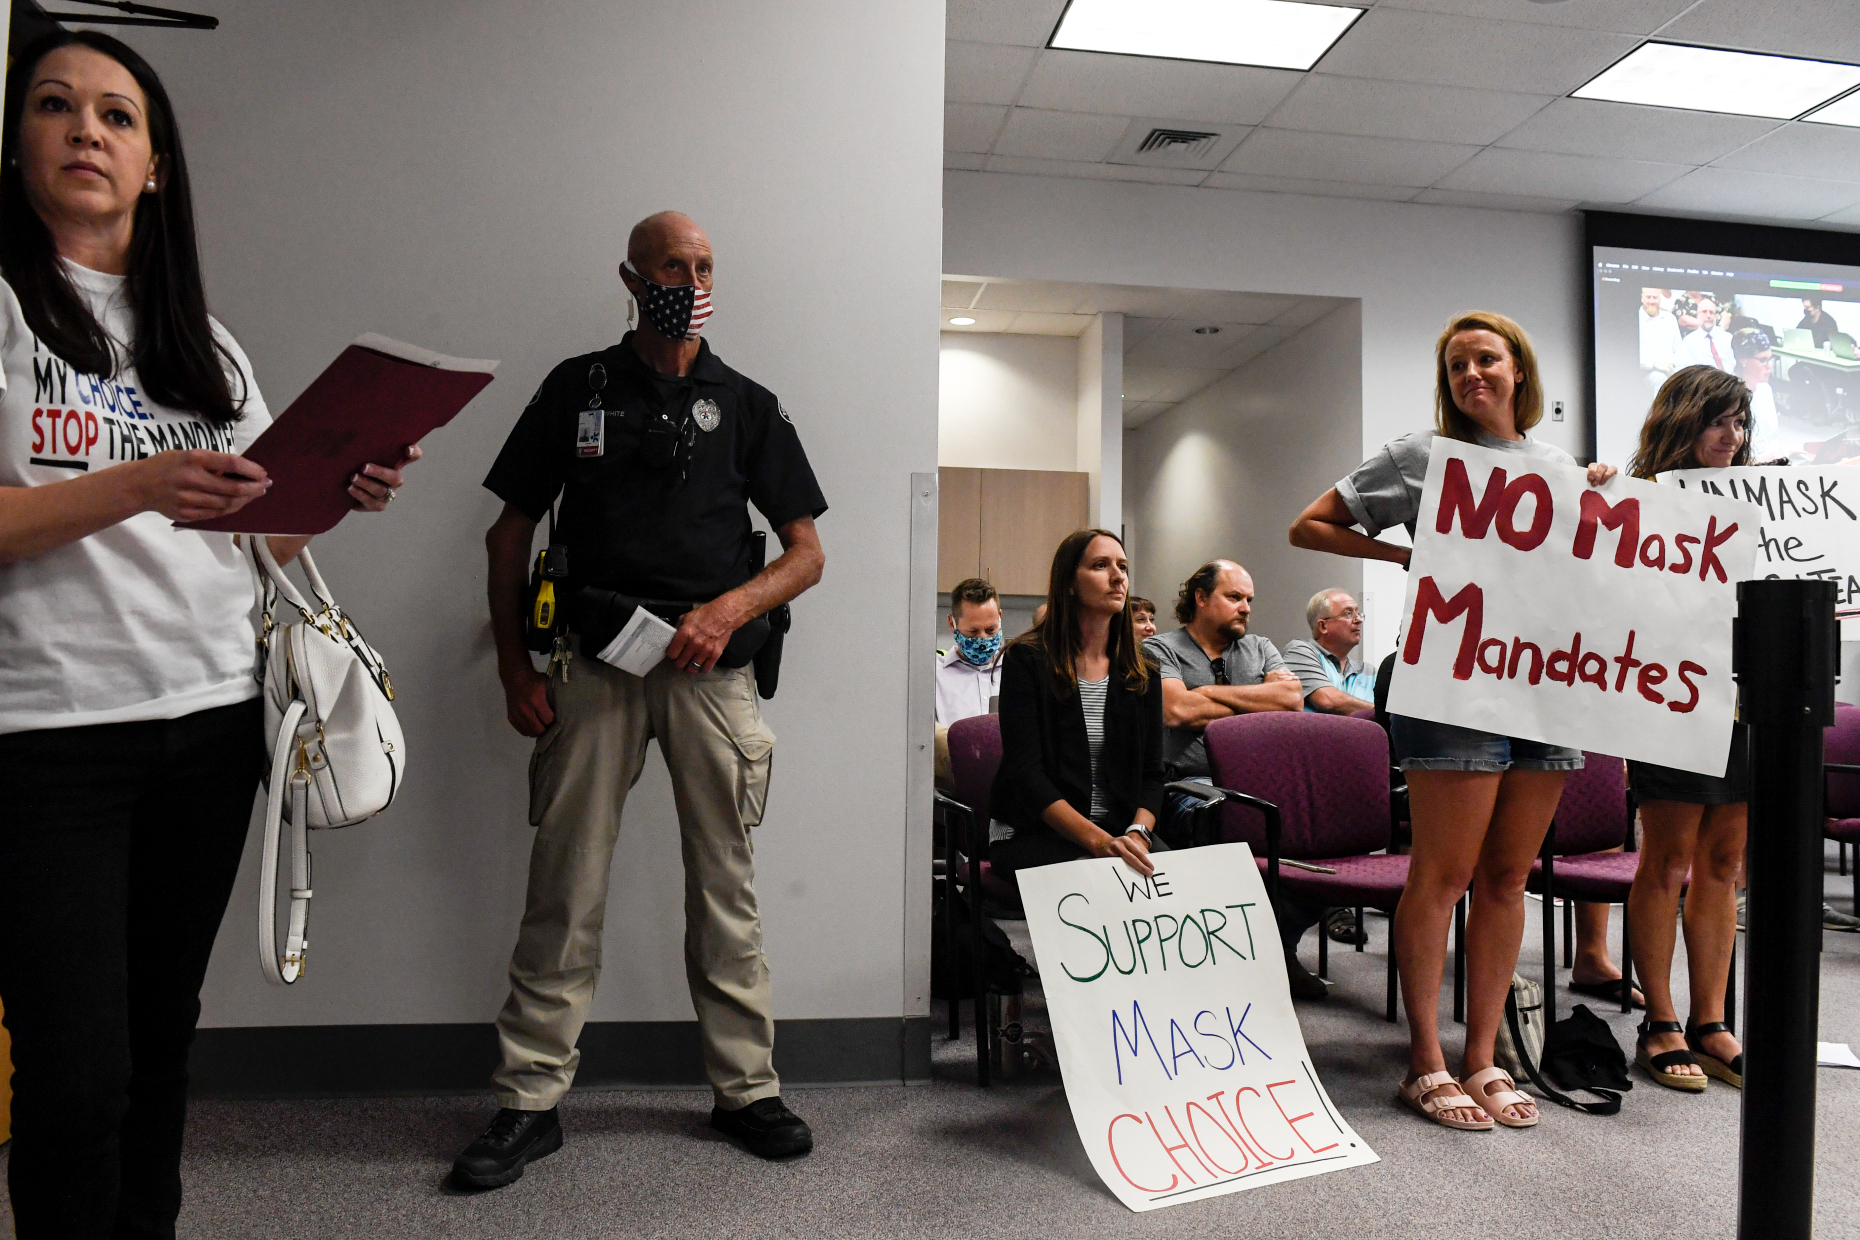 """A security officer in a brown and biege uniform stands against a wall surrounded by women carrying signs that say """"No mask mandates"""" and """"Support mask choice."""""""